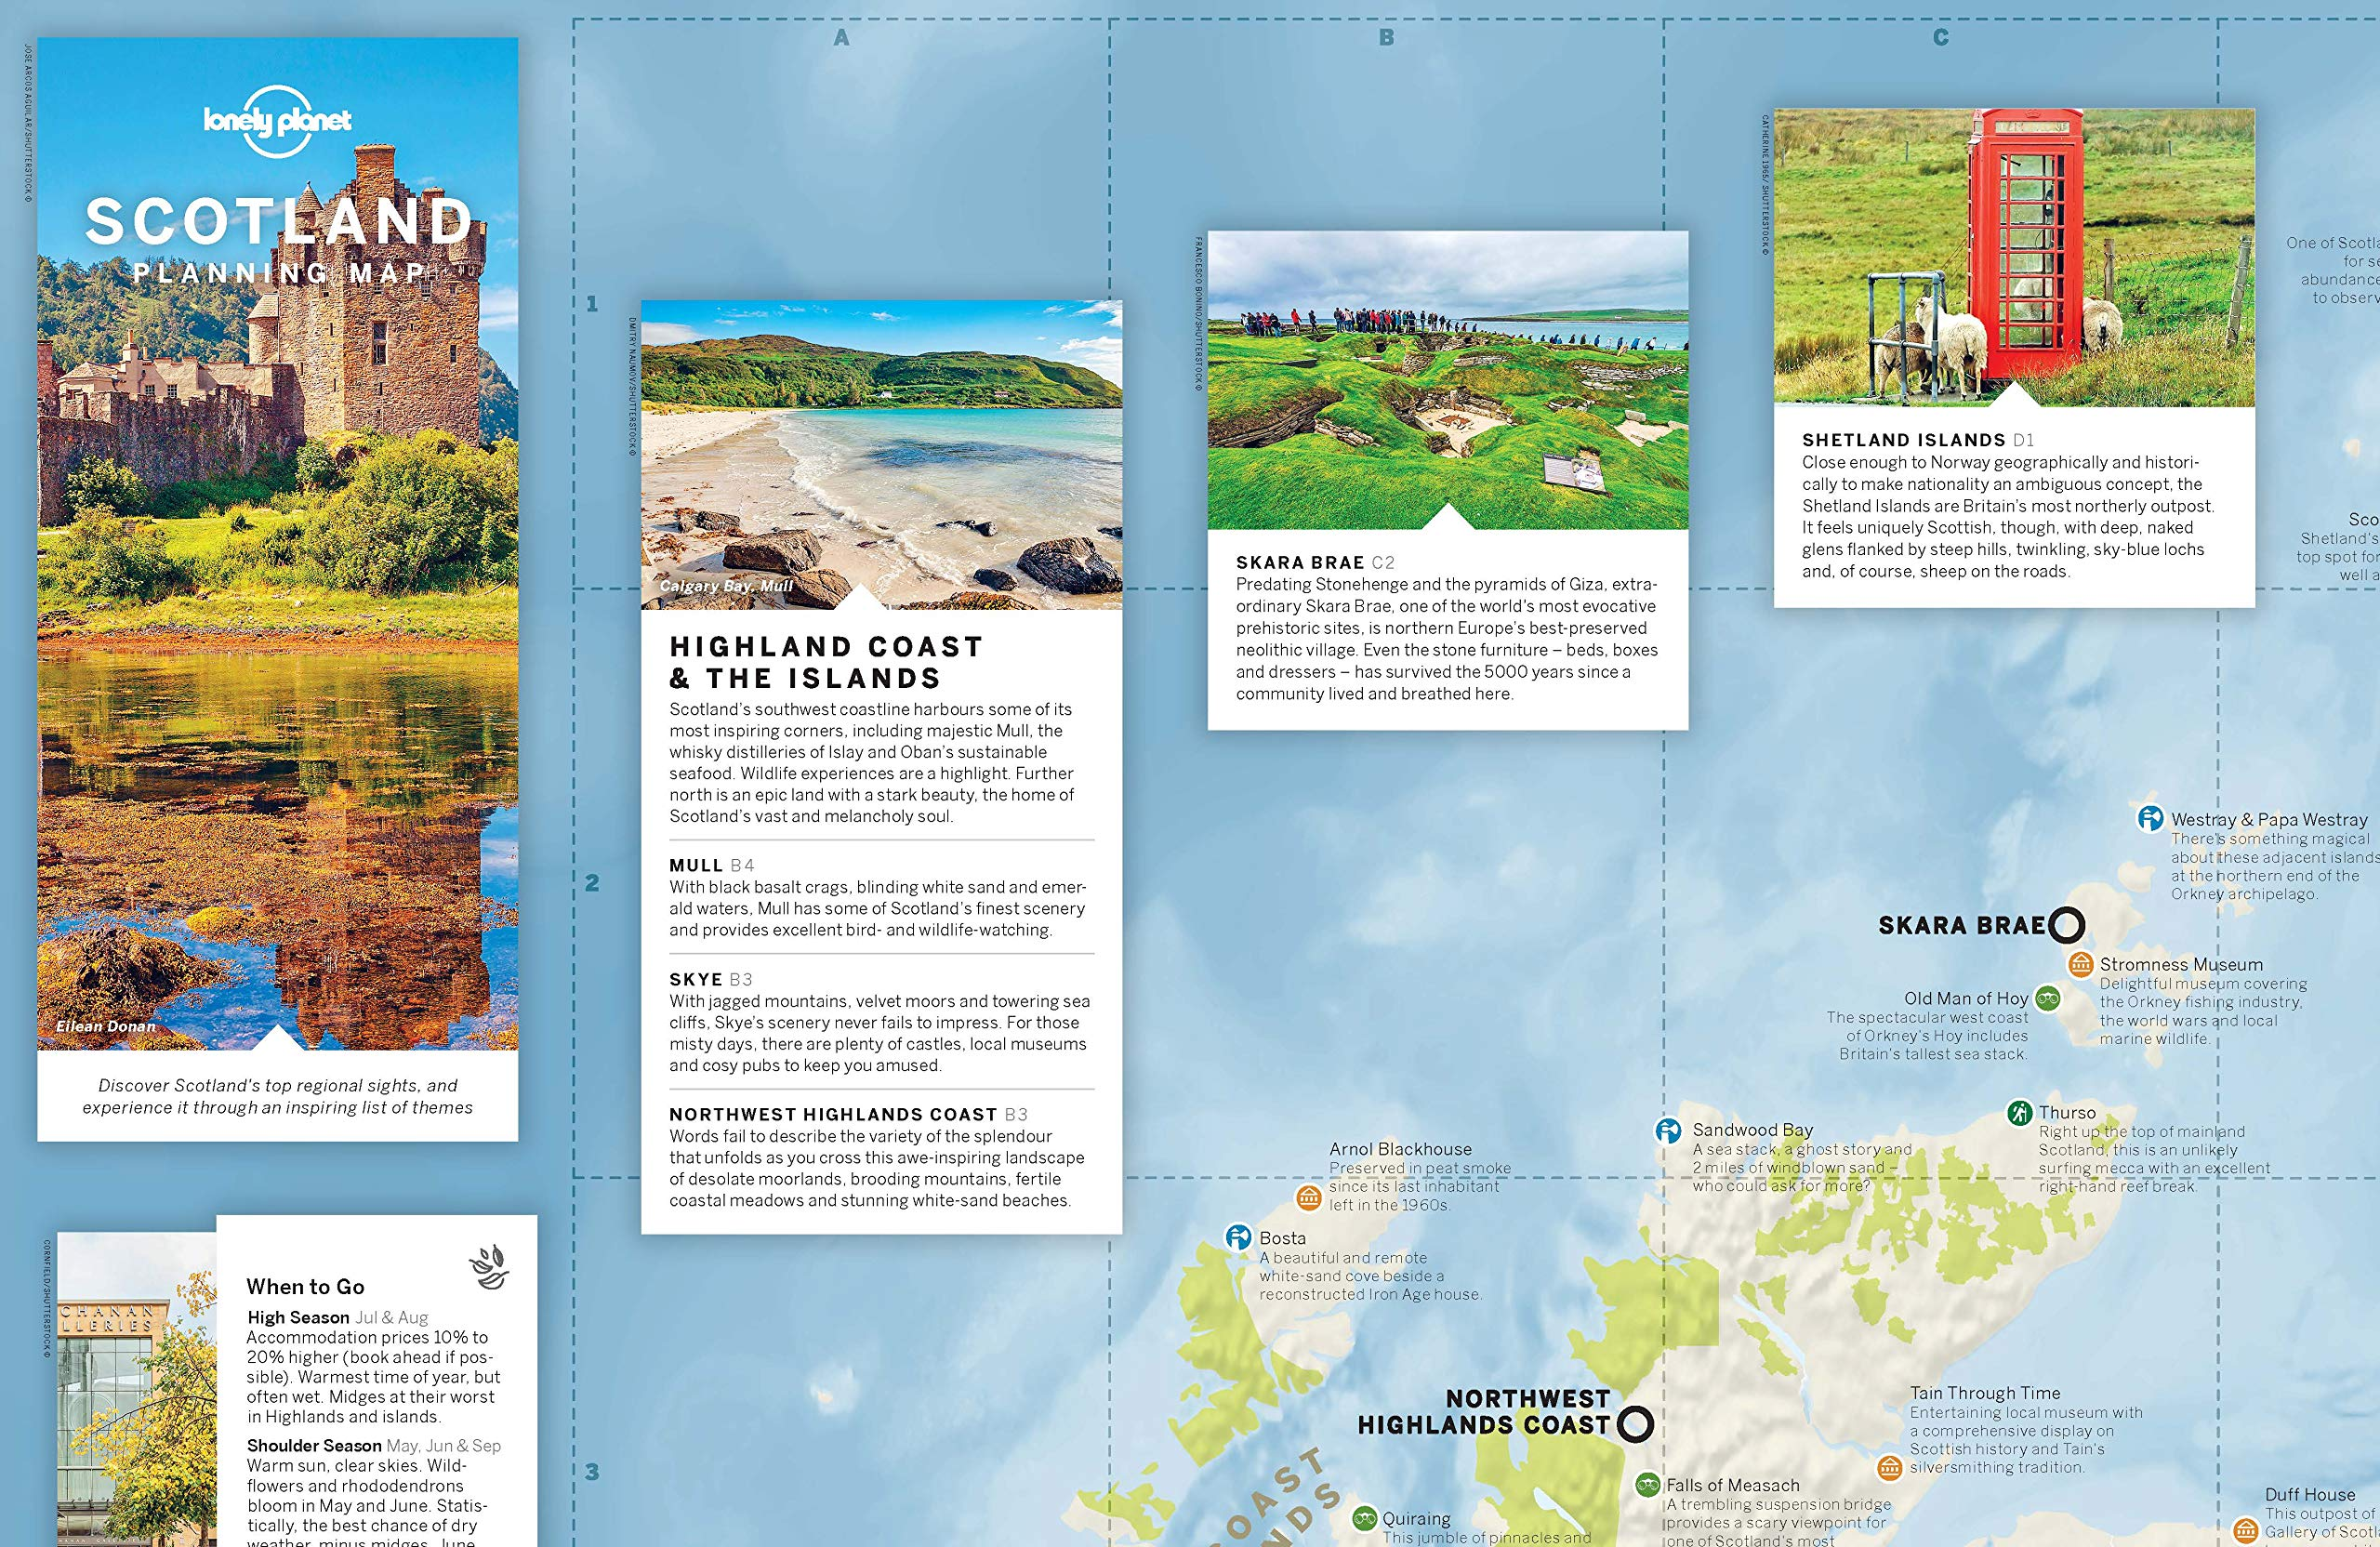 Tomtom Australia Map 915.Lonely Planet Scotland Planning Map Amazon Co Uk Lonely Planet